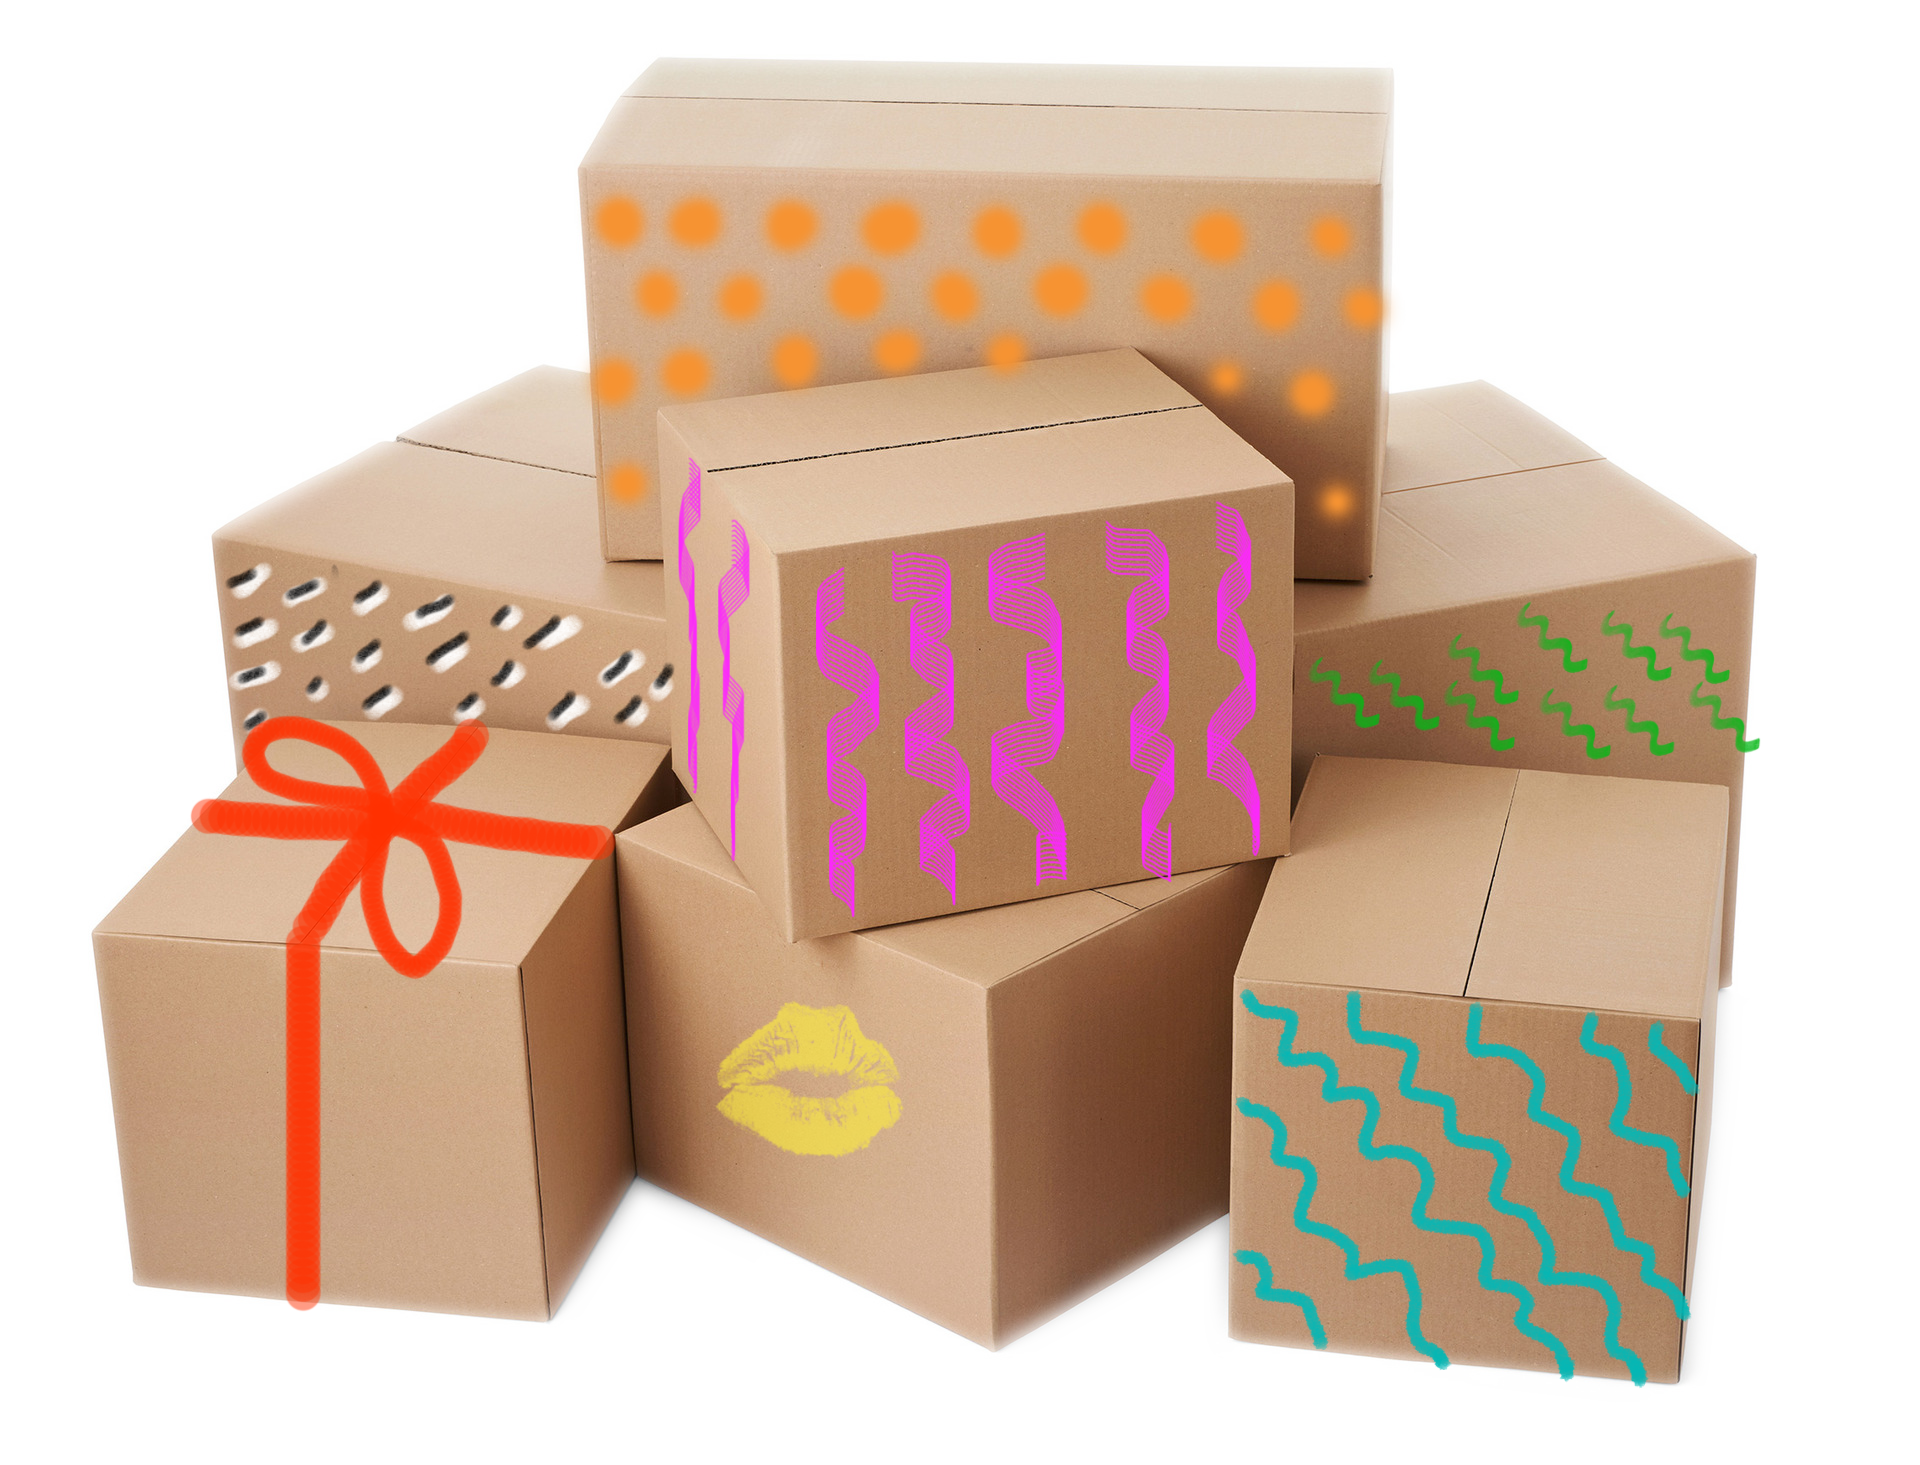 Stack of boxes png. Painted pop box